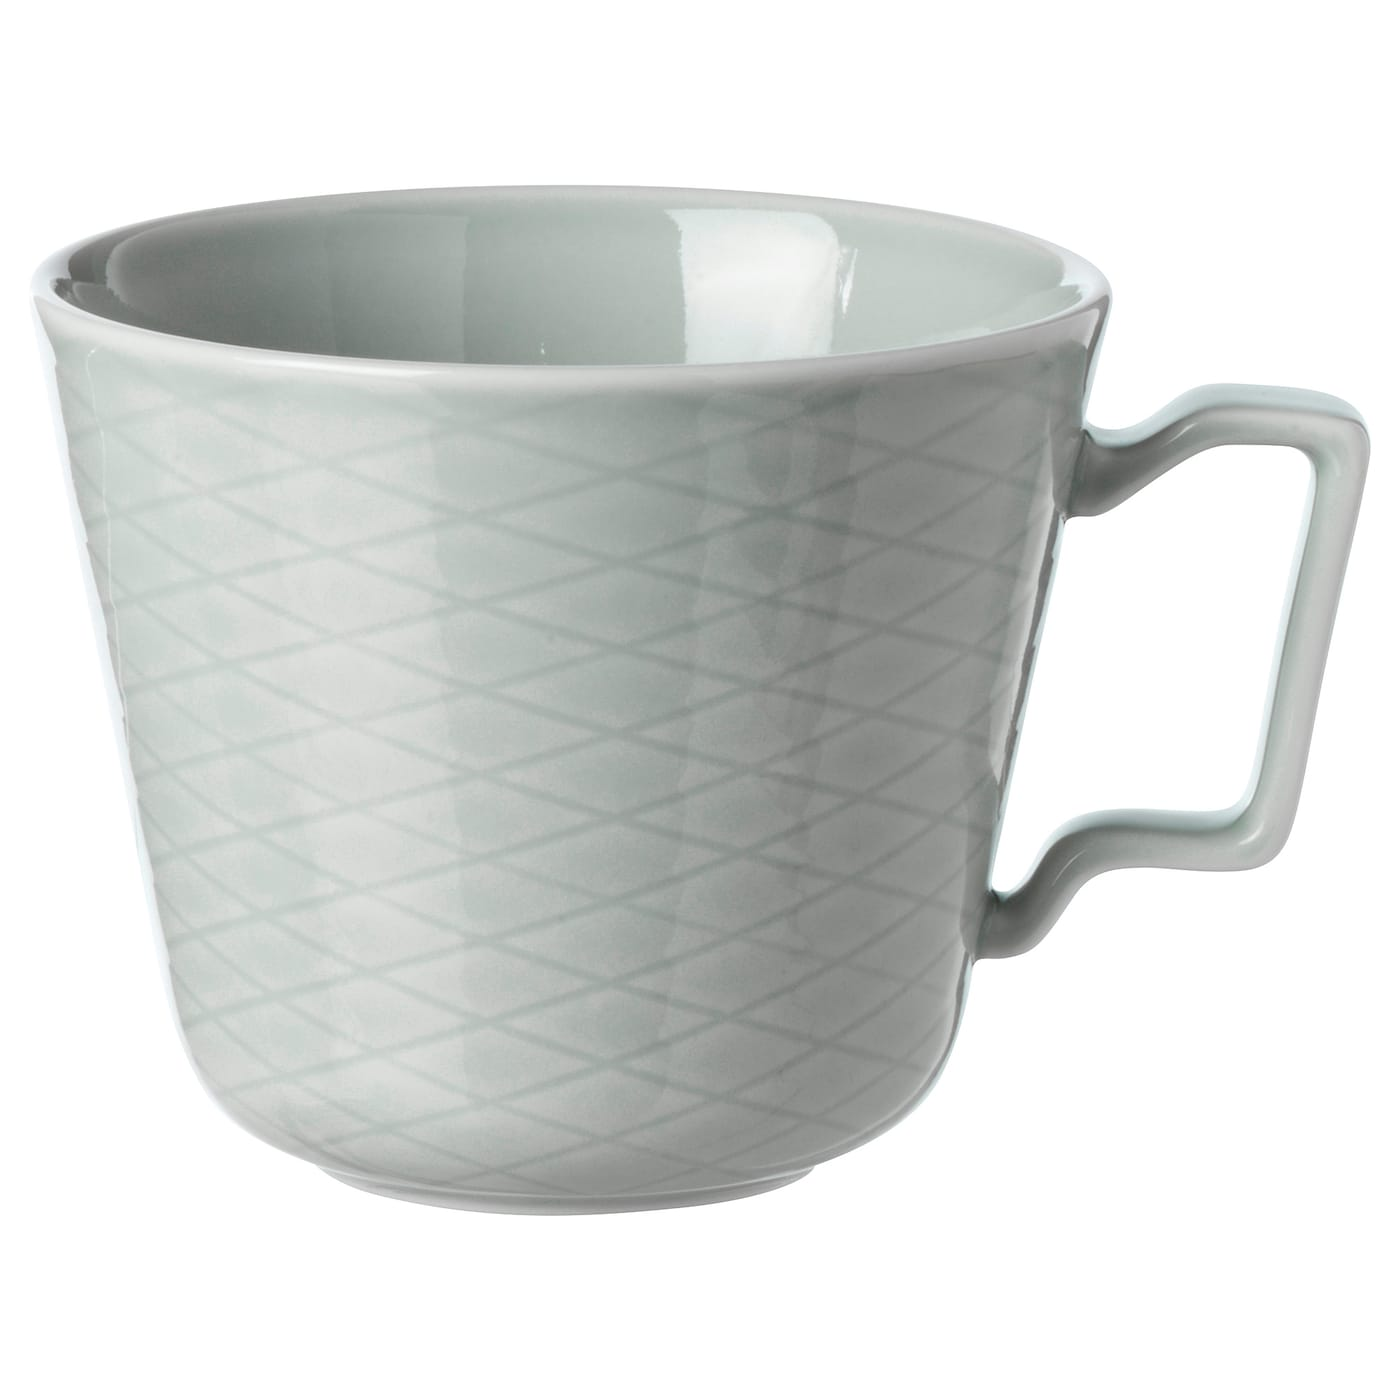 IKEA KRUSTAD mug Made of feldspar porcelain, which makes the cup impact resistant and durable.